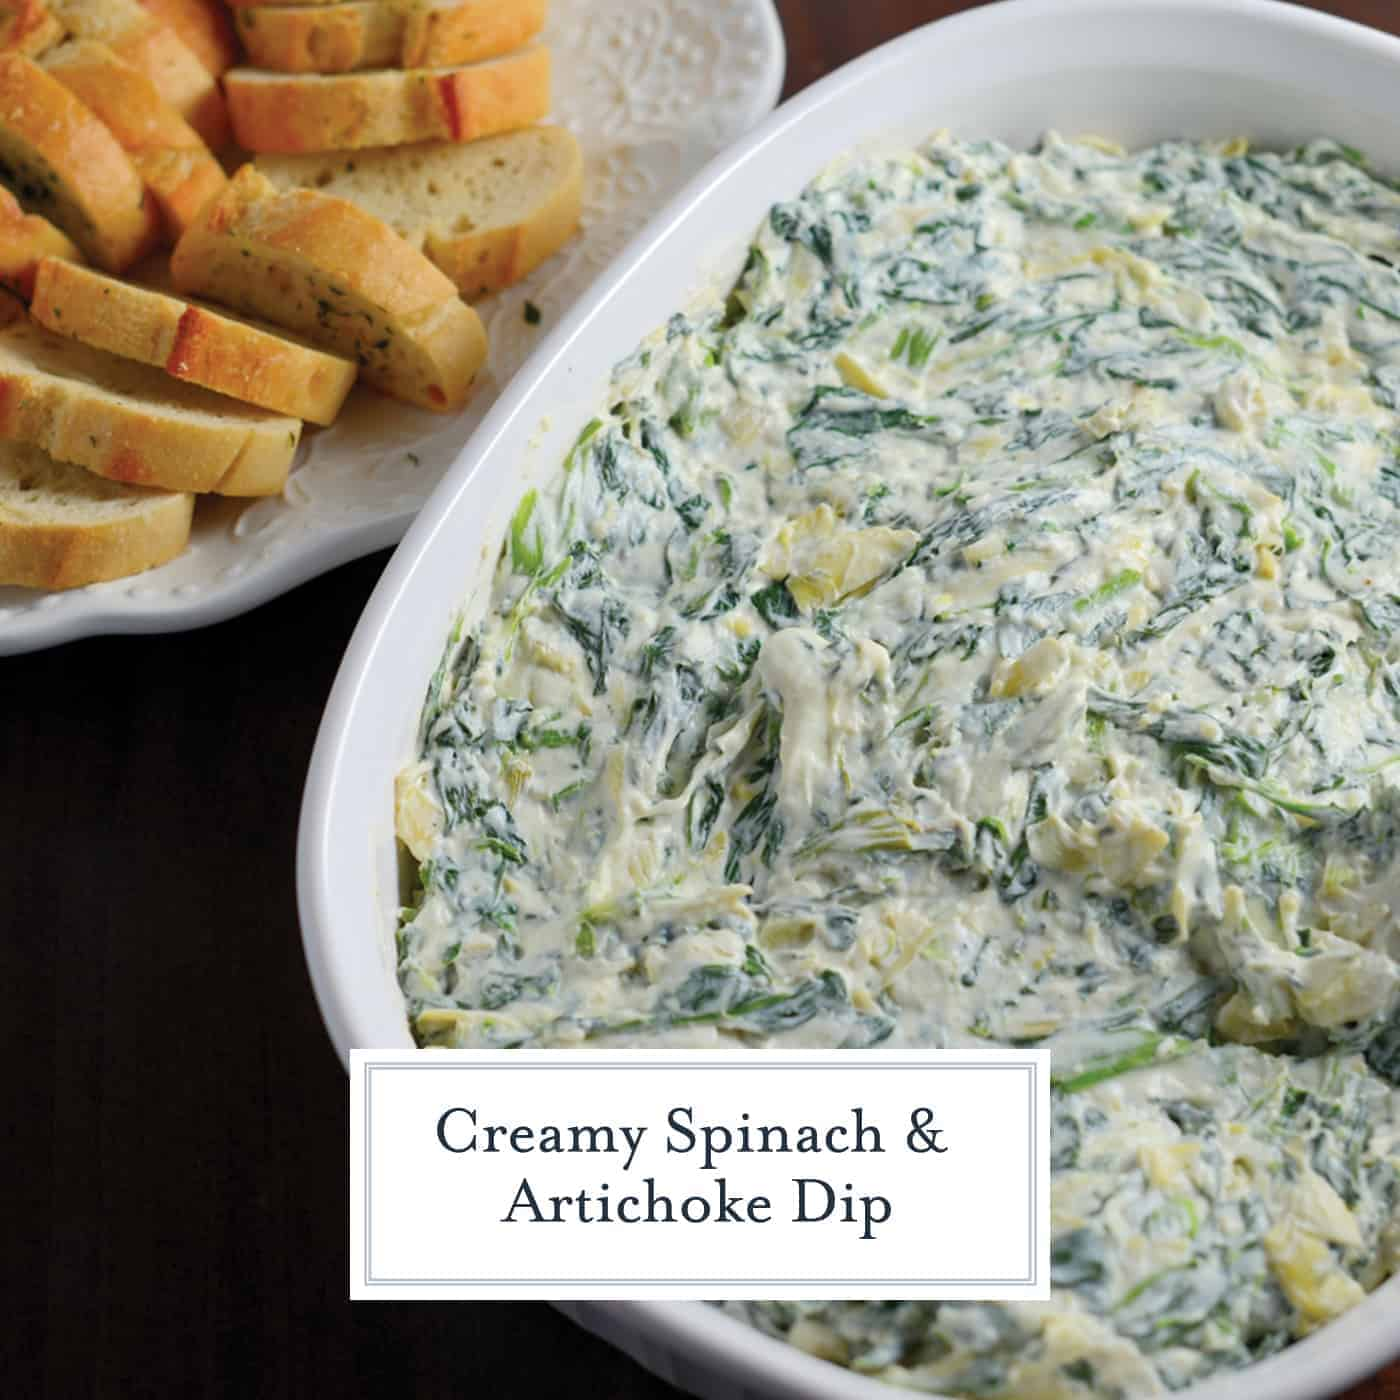 Creamy Spinach Artichoke Dip is the perfect party appetizer. Make ahead and serve chilled or hot with crackers, crostini or vegetables! #artichokedip #spinachdip #partydips www.savoryexperiments.com